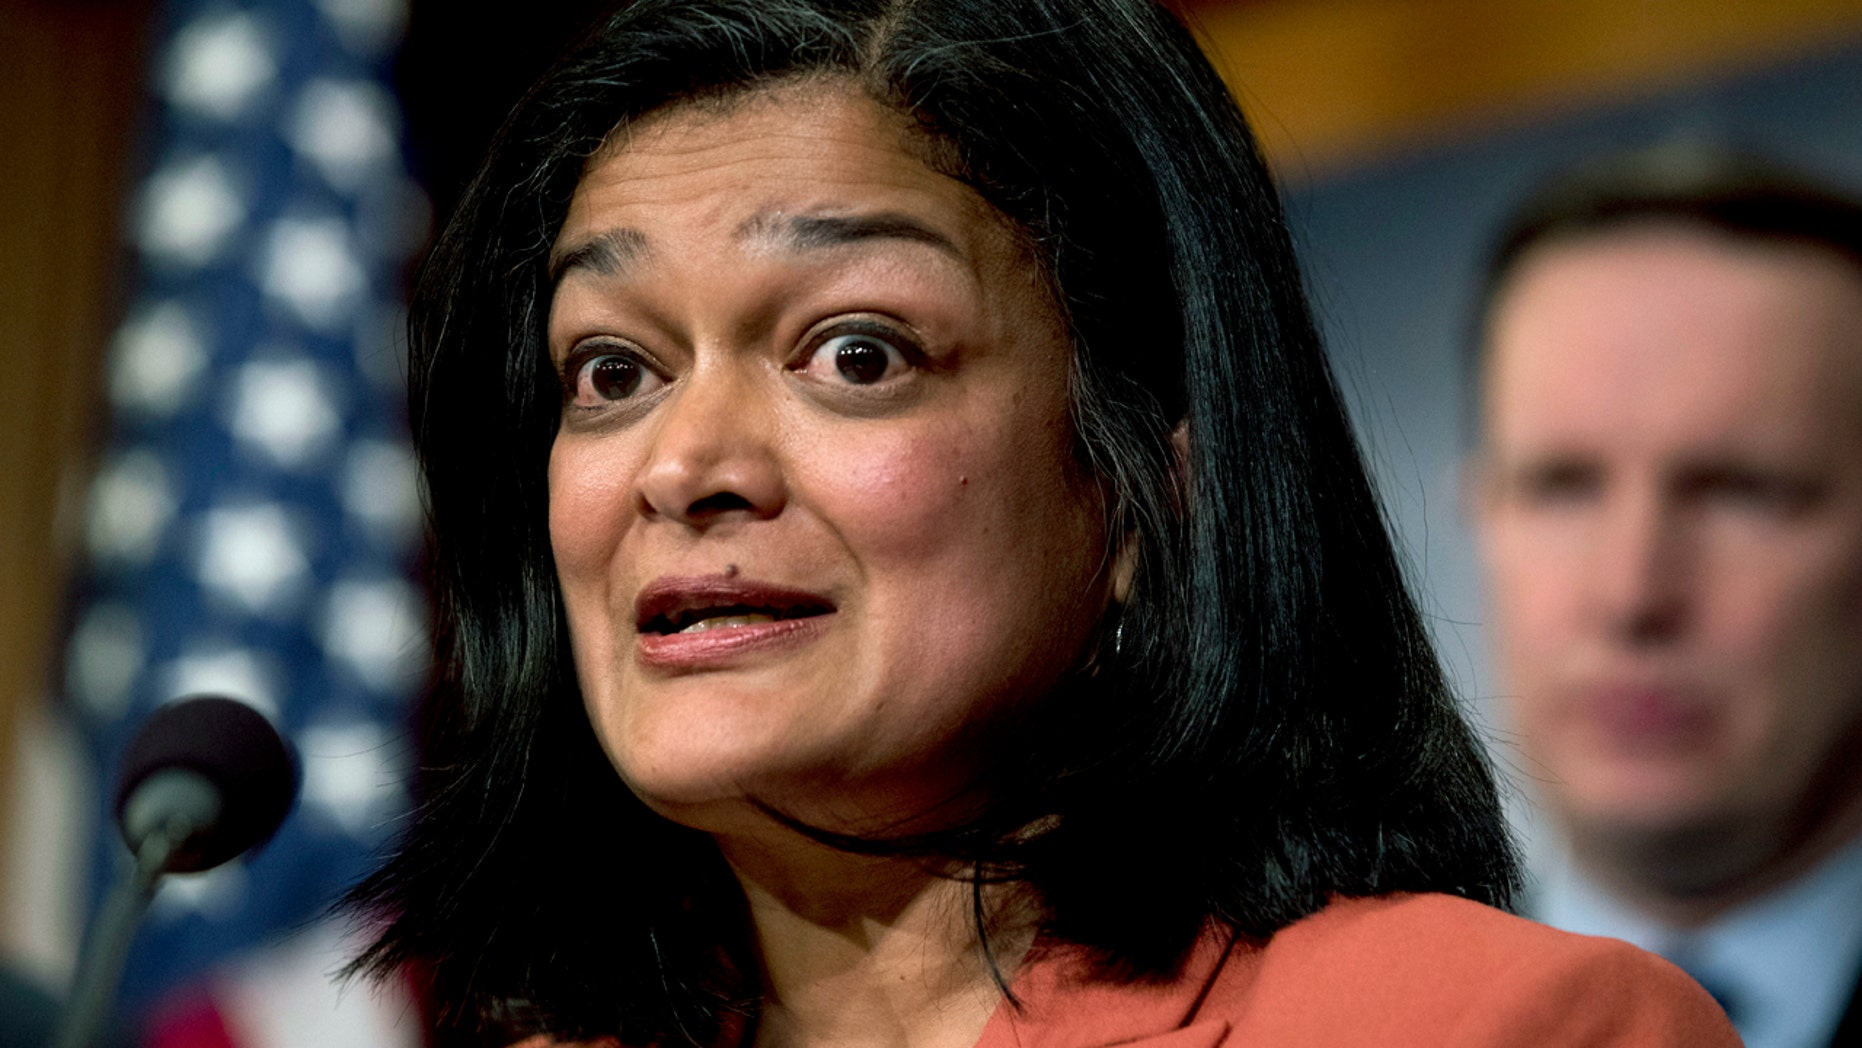 Congressional Progressive Caucus co-chairwoman Rep. Pramila Jayapal, D-Wash, offered an amendment to the spending measure. (AP Photo/Andrew Harnik, File)